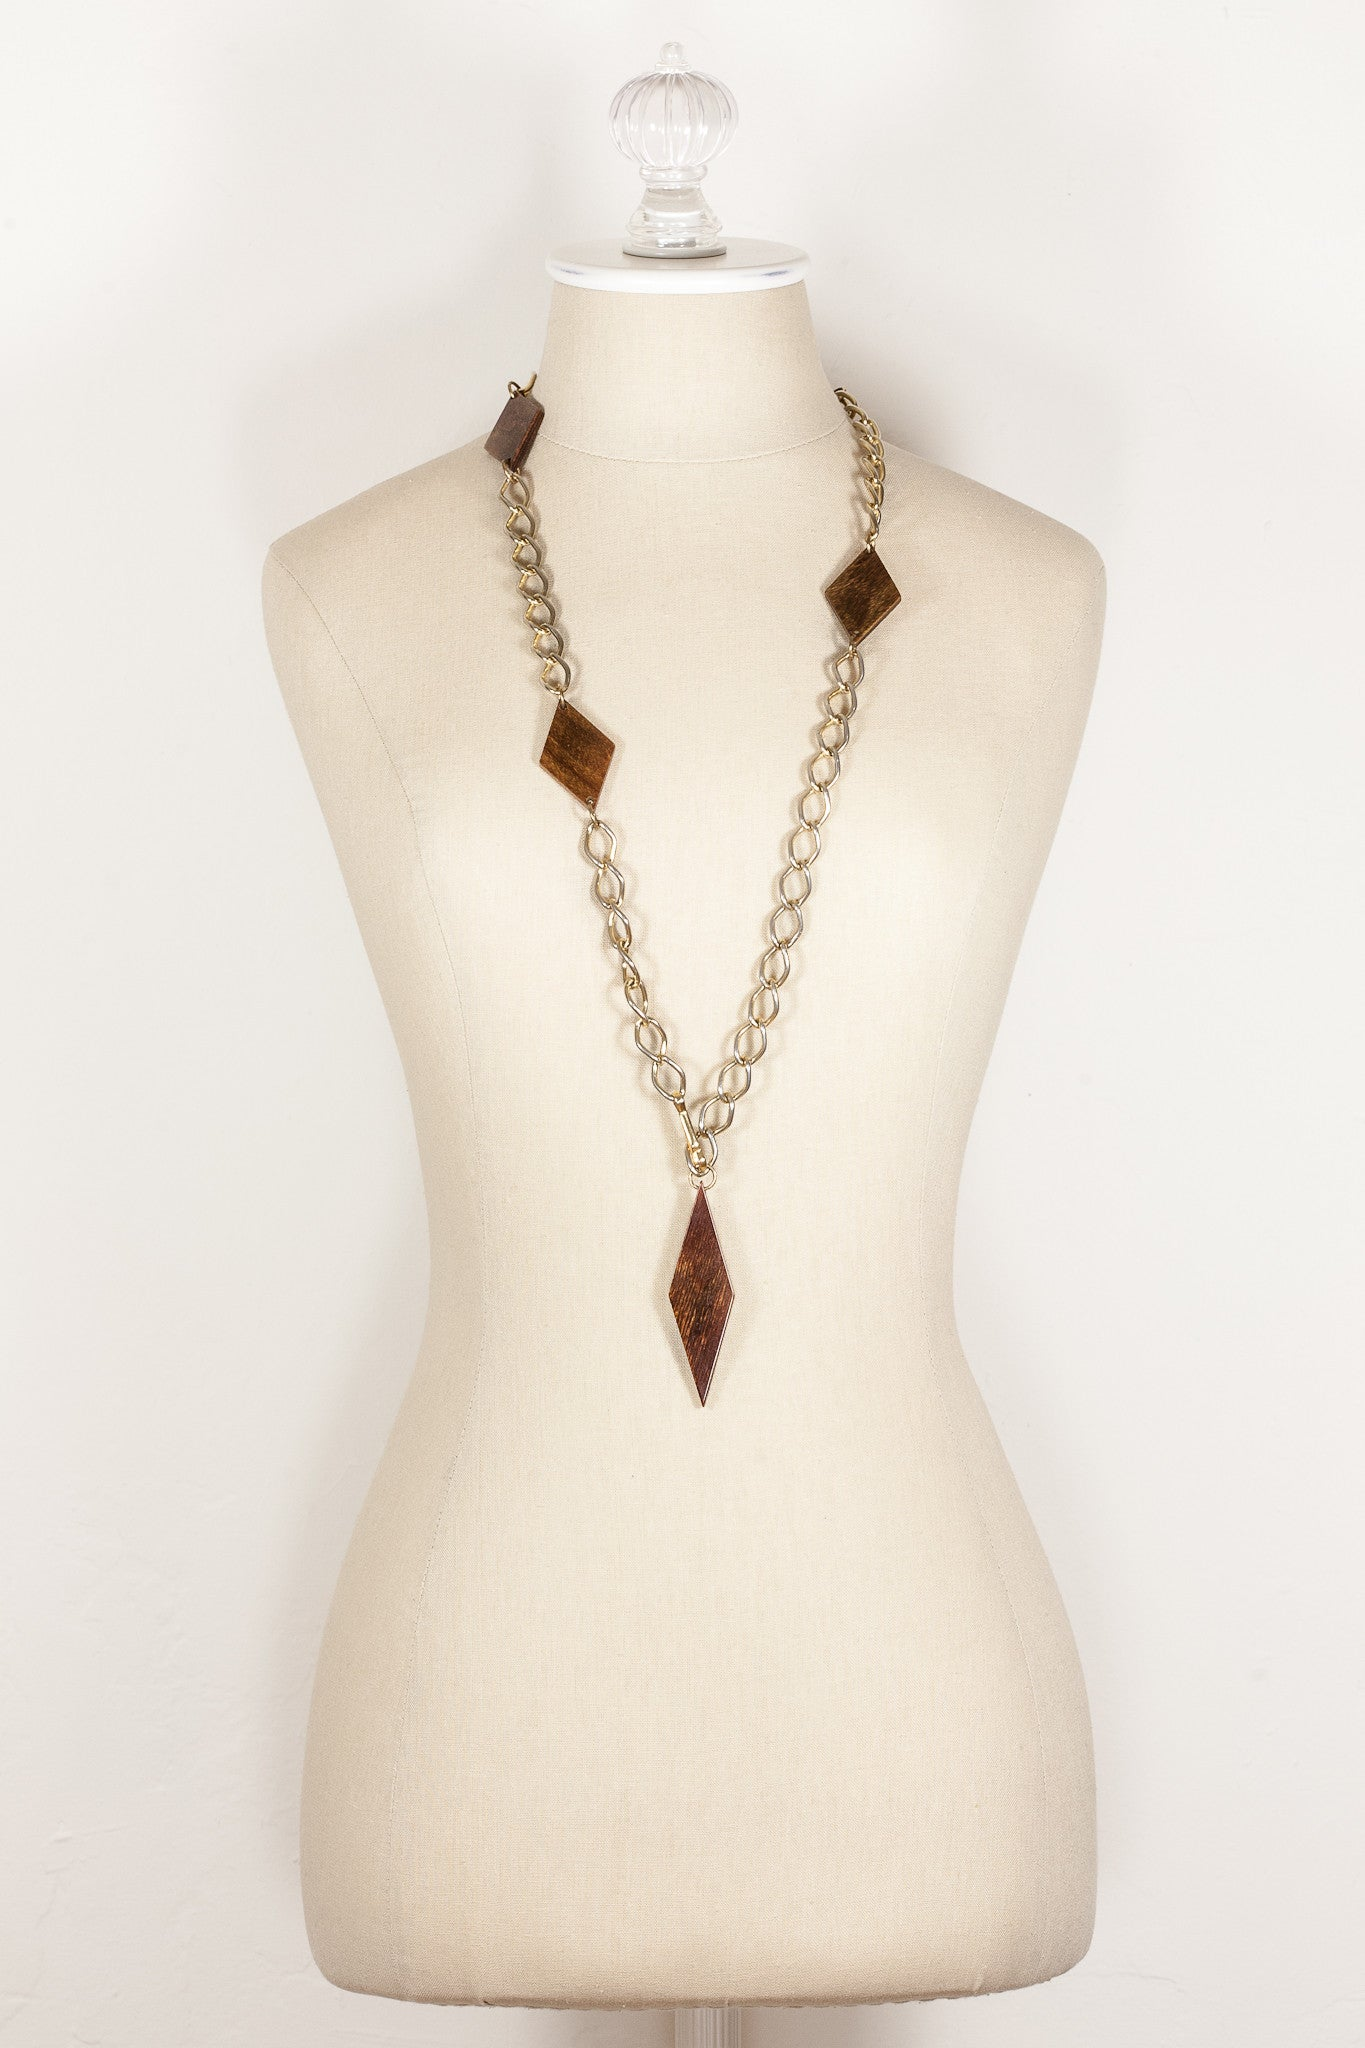 70's__Vintage__Chunky Wood Charm Necklace